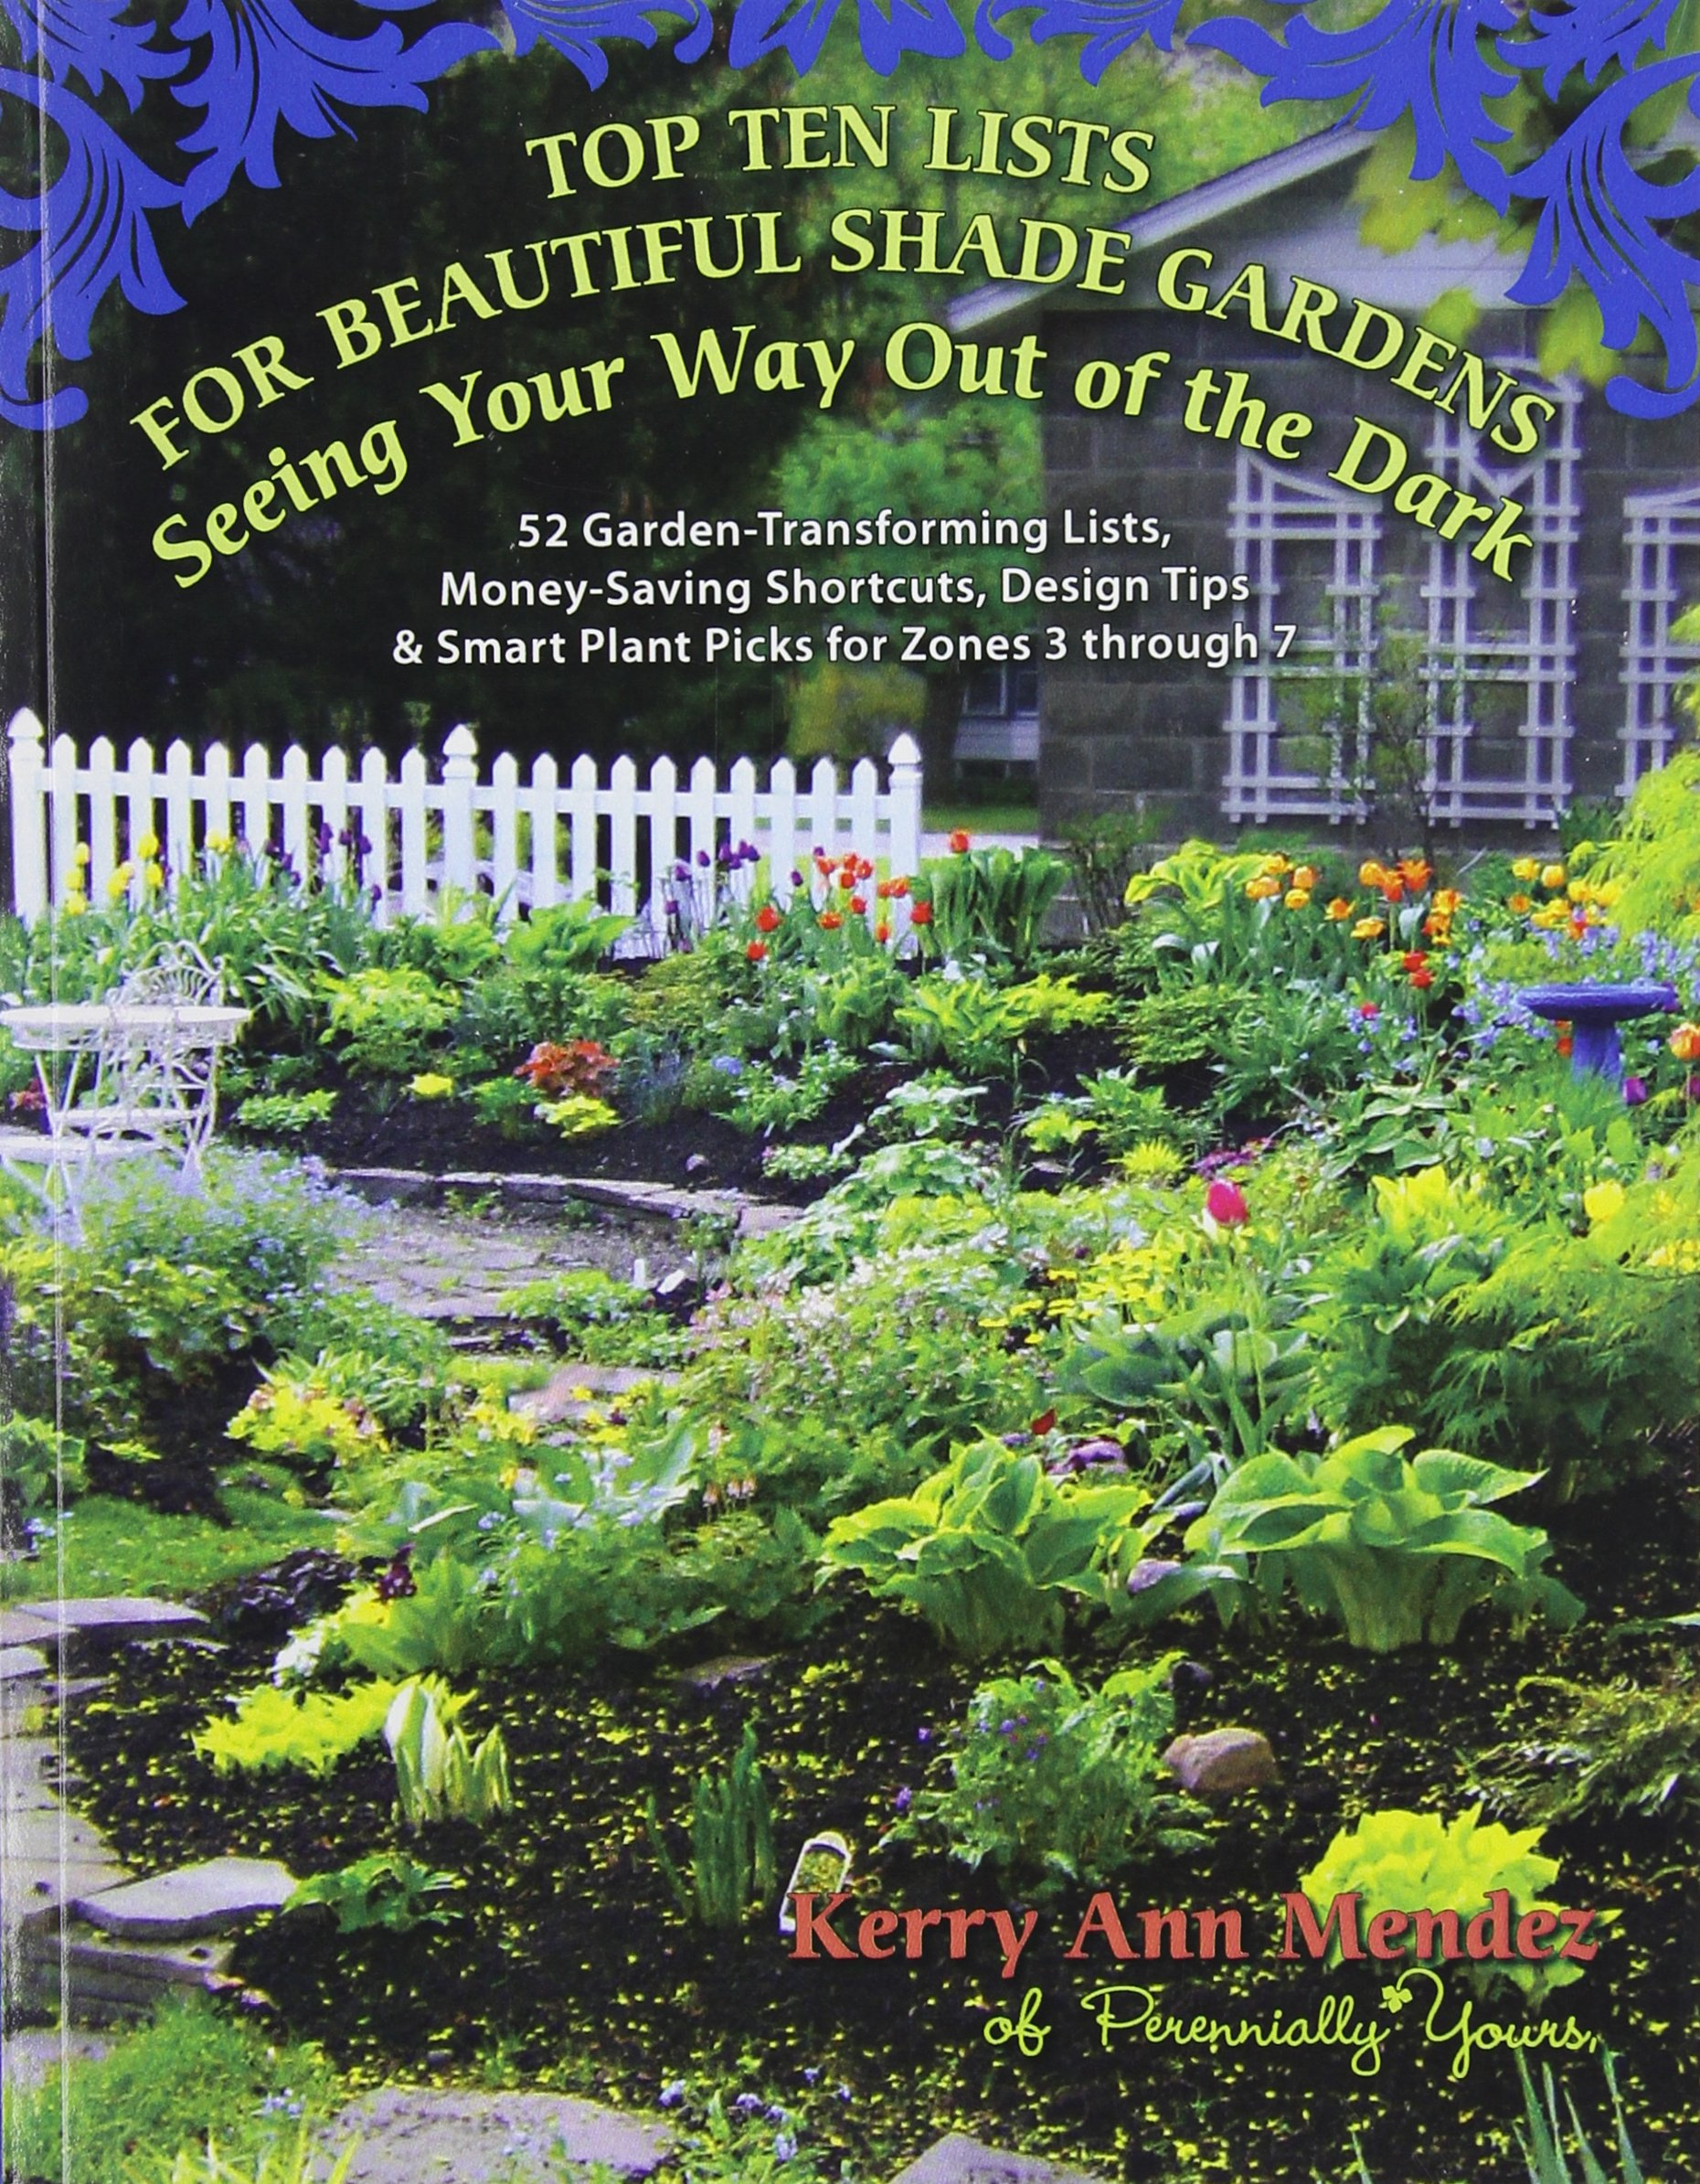 top ten lists for beautiful shade gardens seeing your way out of the dark 52 garden transforming lists money saving shortcuts design tips smart plant